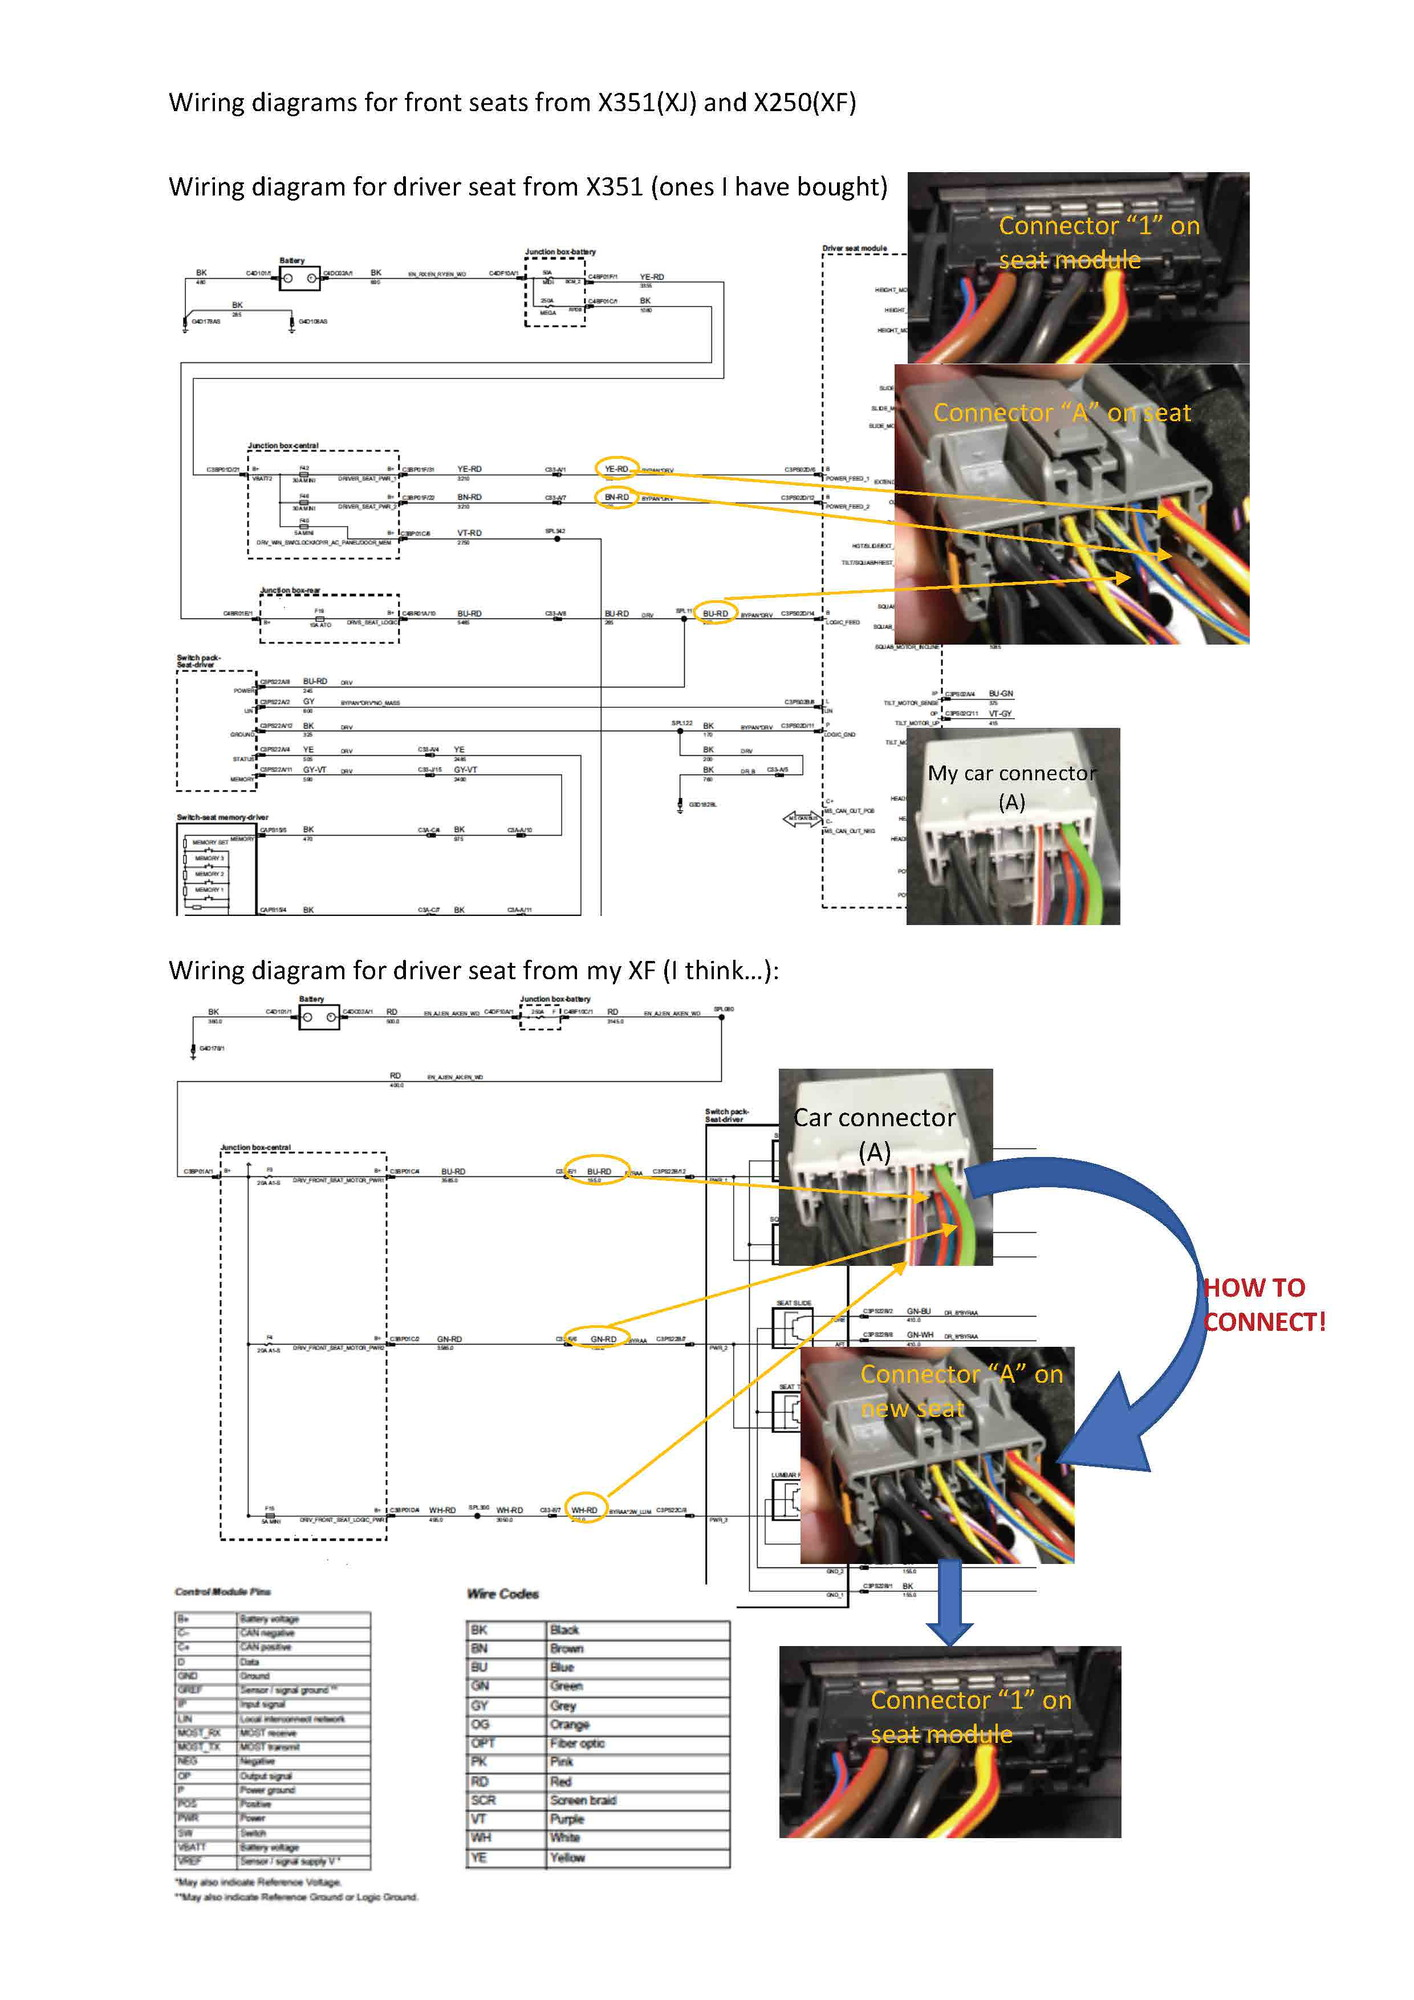 hight resolution of jaguar xf seat wiring diagram front seat upgrade wiring problems need advice jaguar